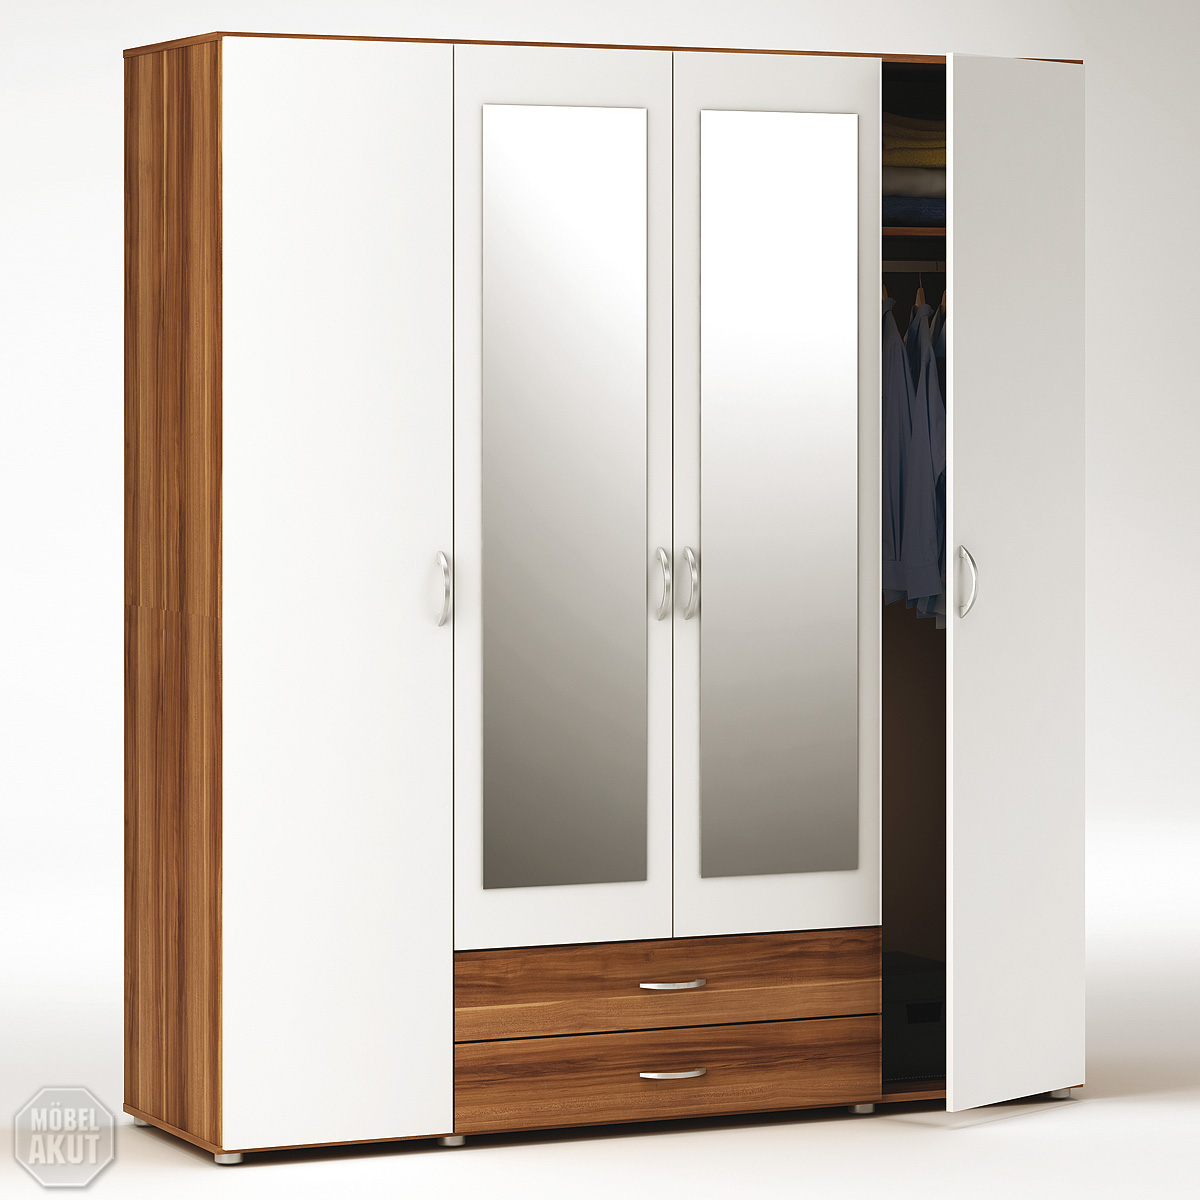 kleiderschrank zapo schrank in nussbaum weiss mit spiegel neu b 172. Black Bedroom Furniture Sets. Home Design Ideas